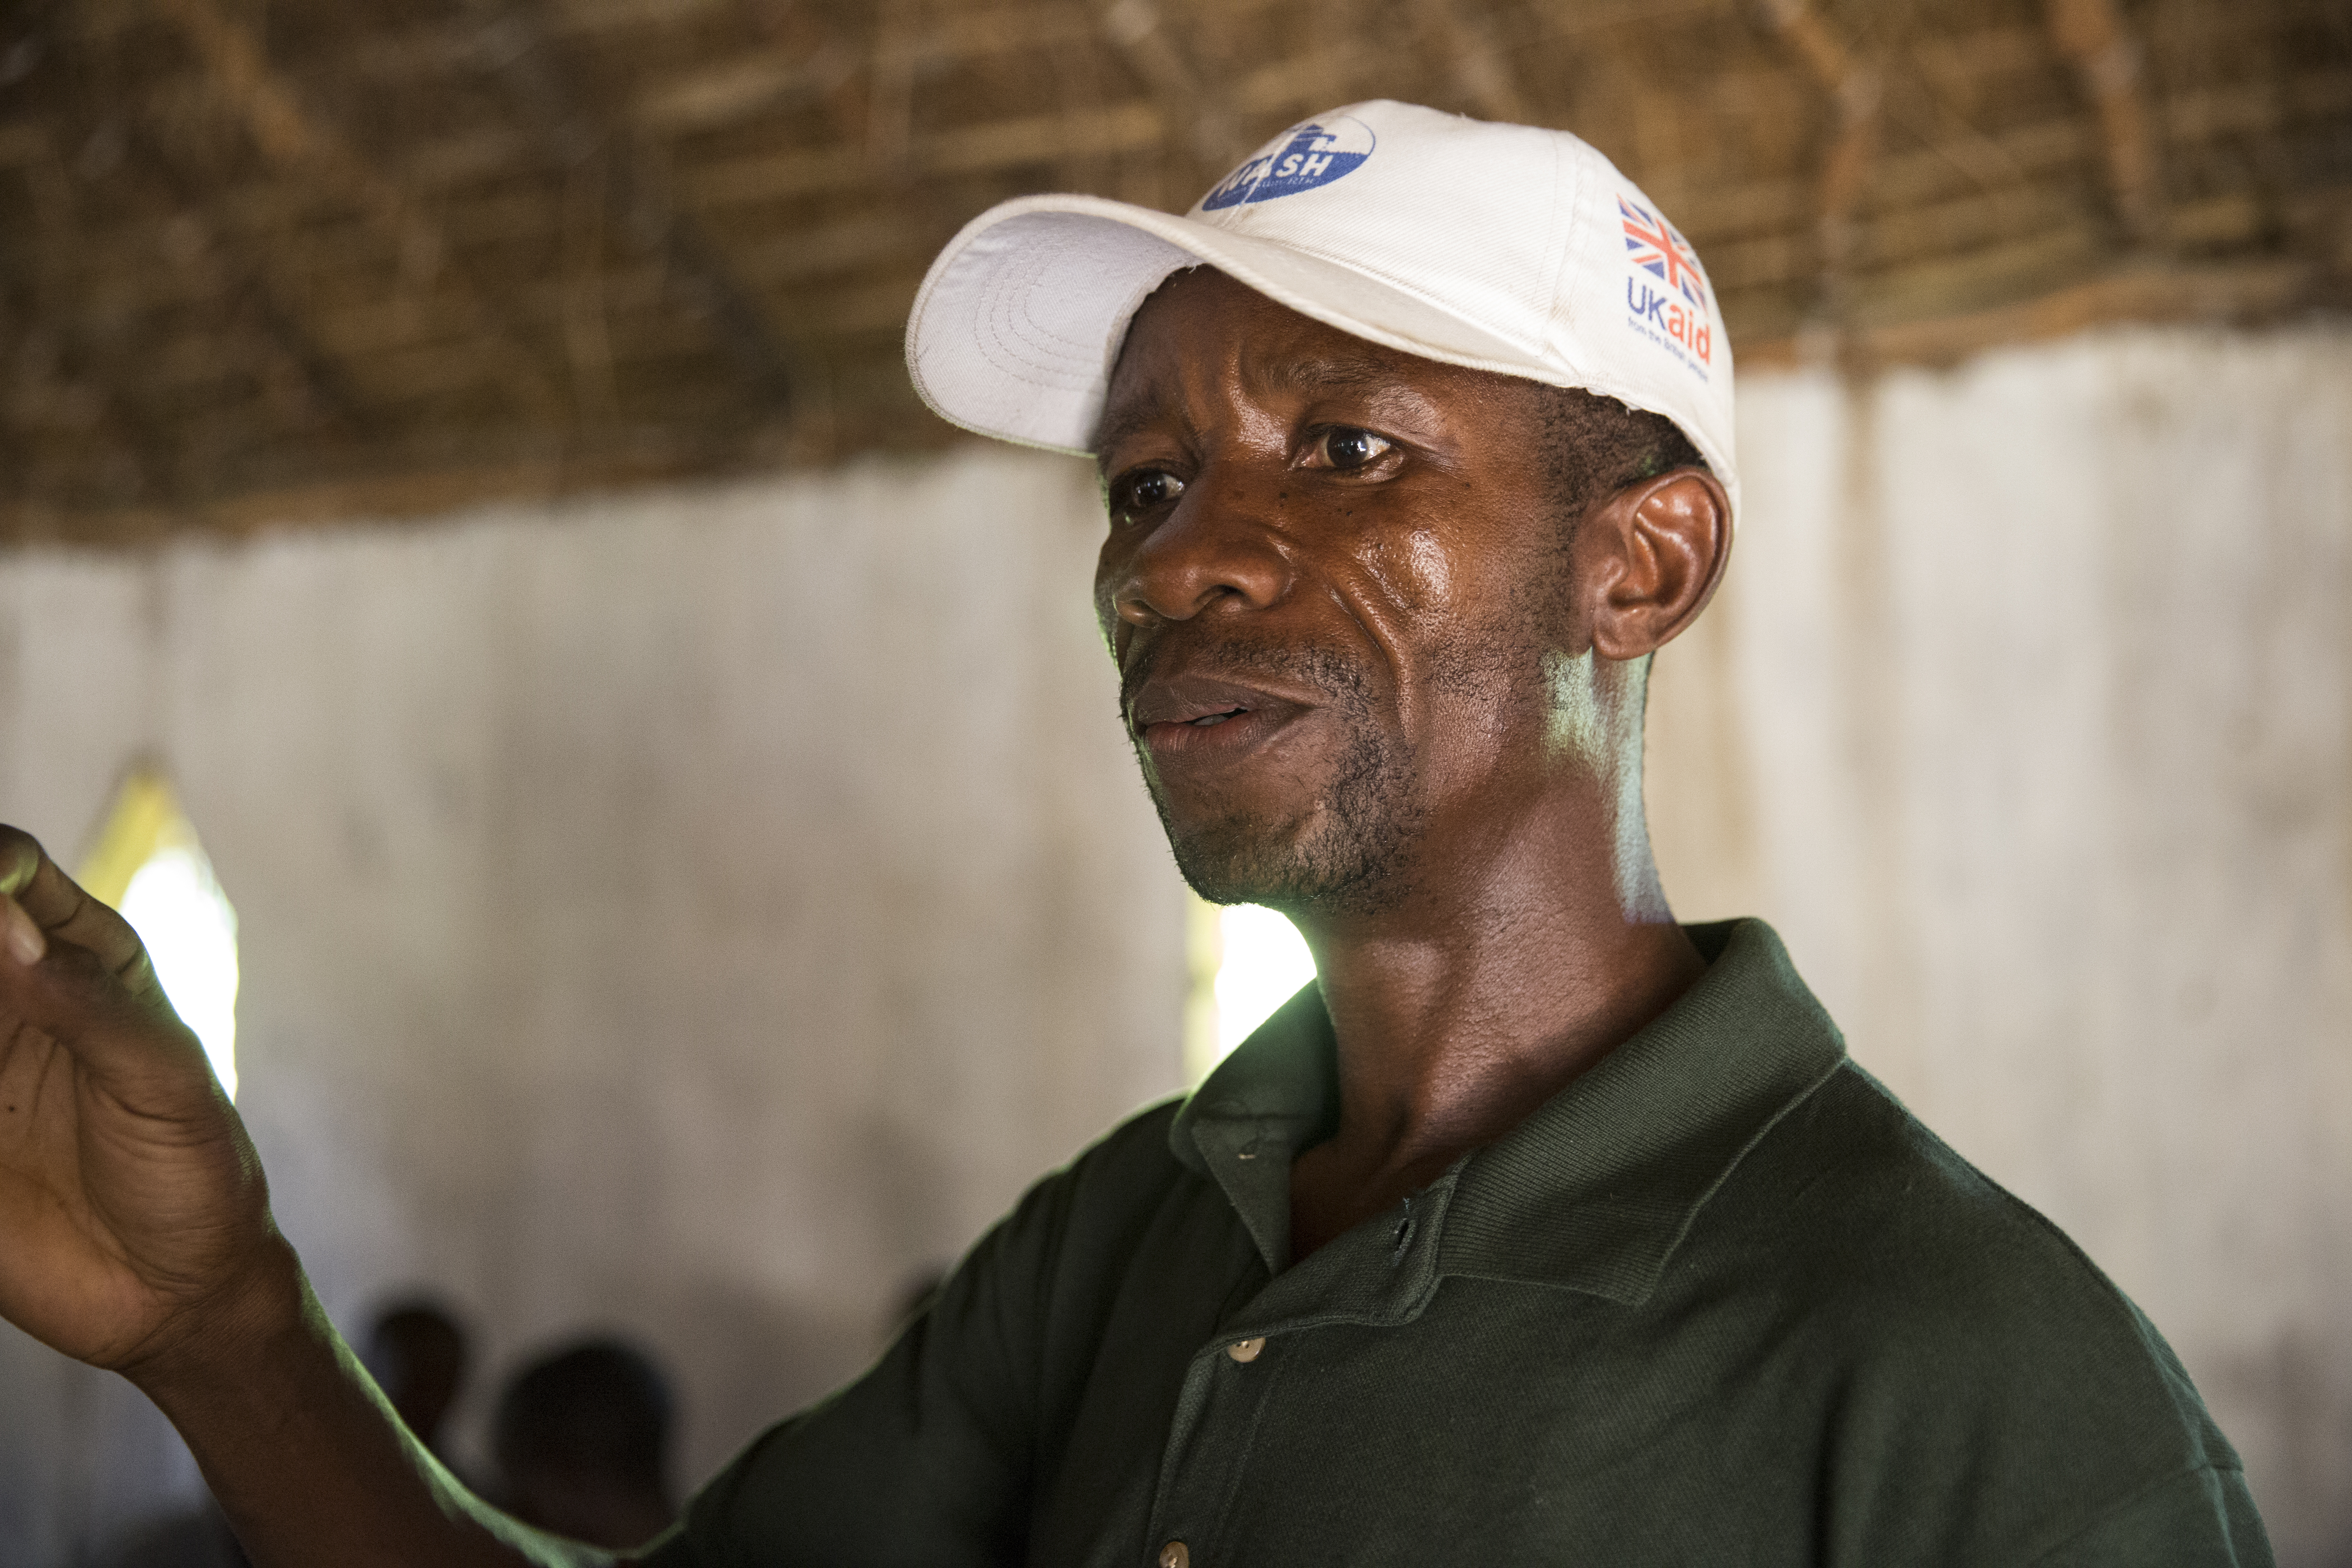 Albert Mukalay, a Concern Hygiene Promoter in DRC